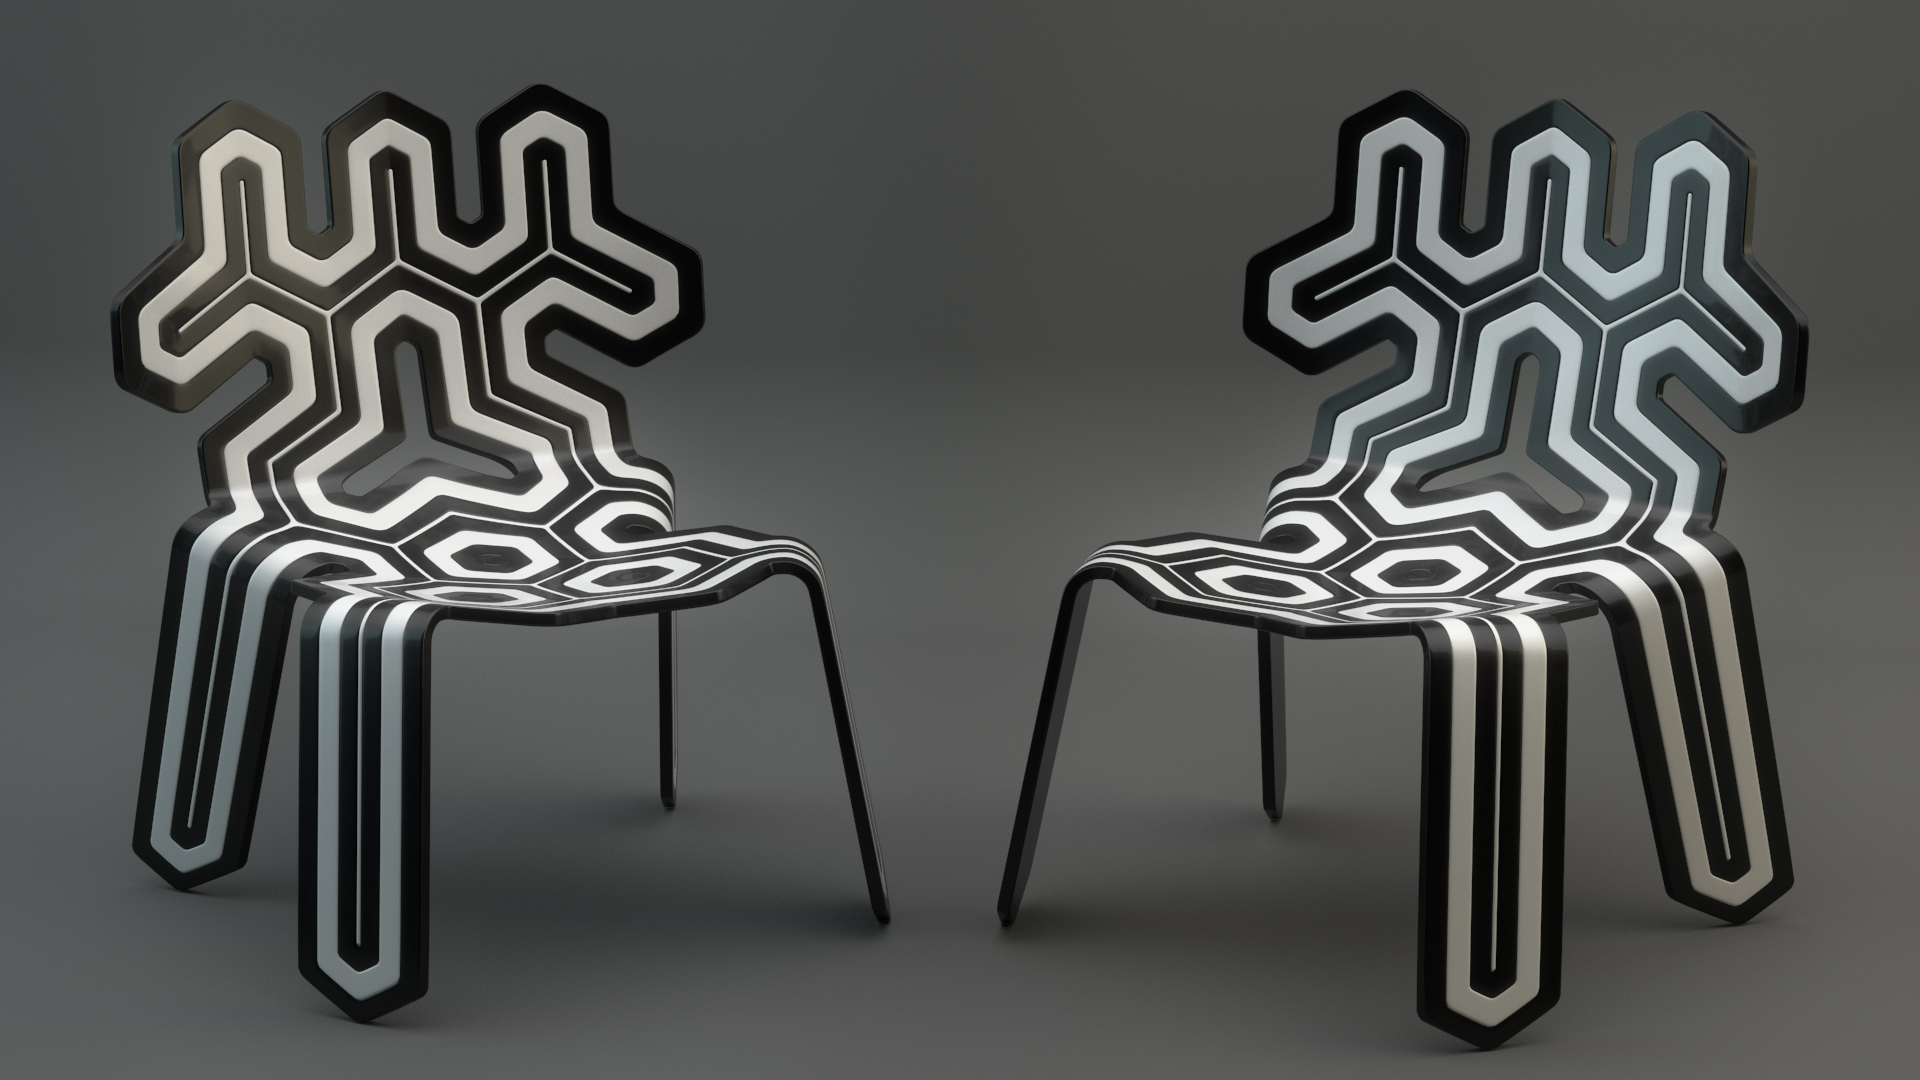 A quick plastic study on some funky cool chairs from a stock model pack.  Plastic is sort of easy/mundane at this point but the chair is just so cool I couldn't pass up the chance to do a quick render.